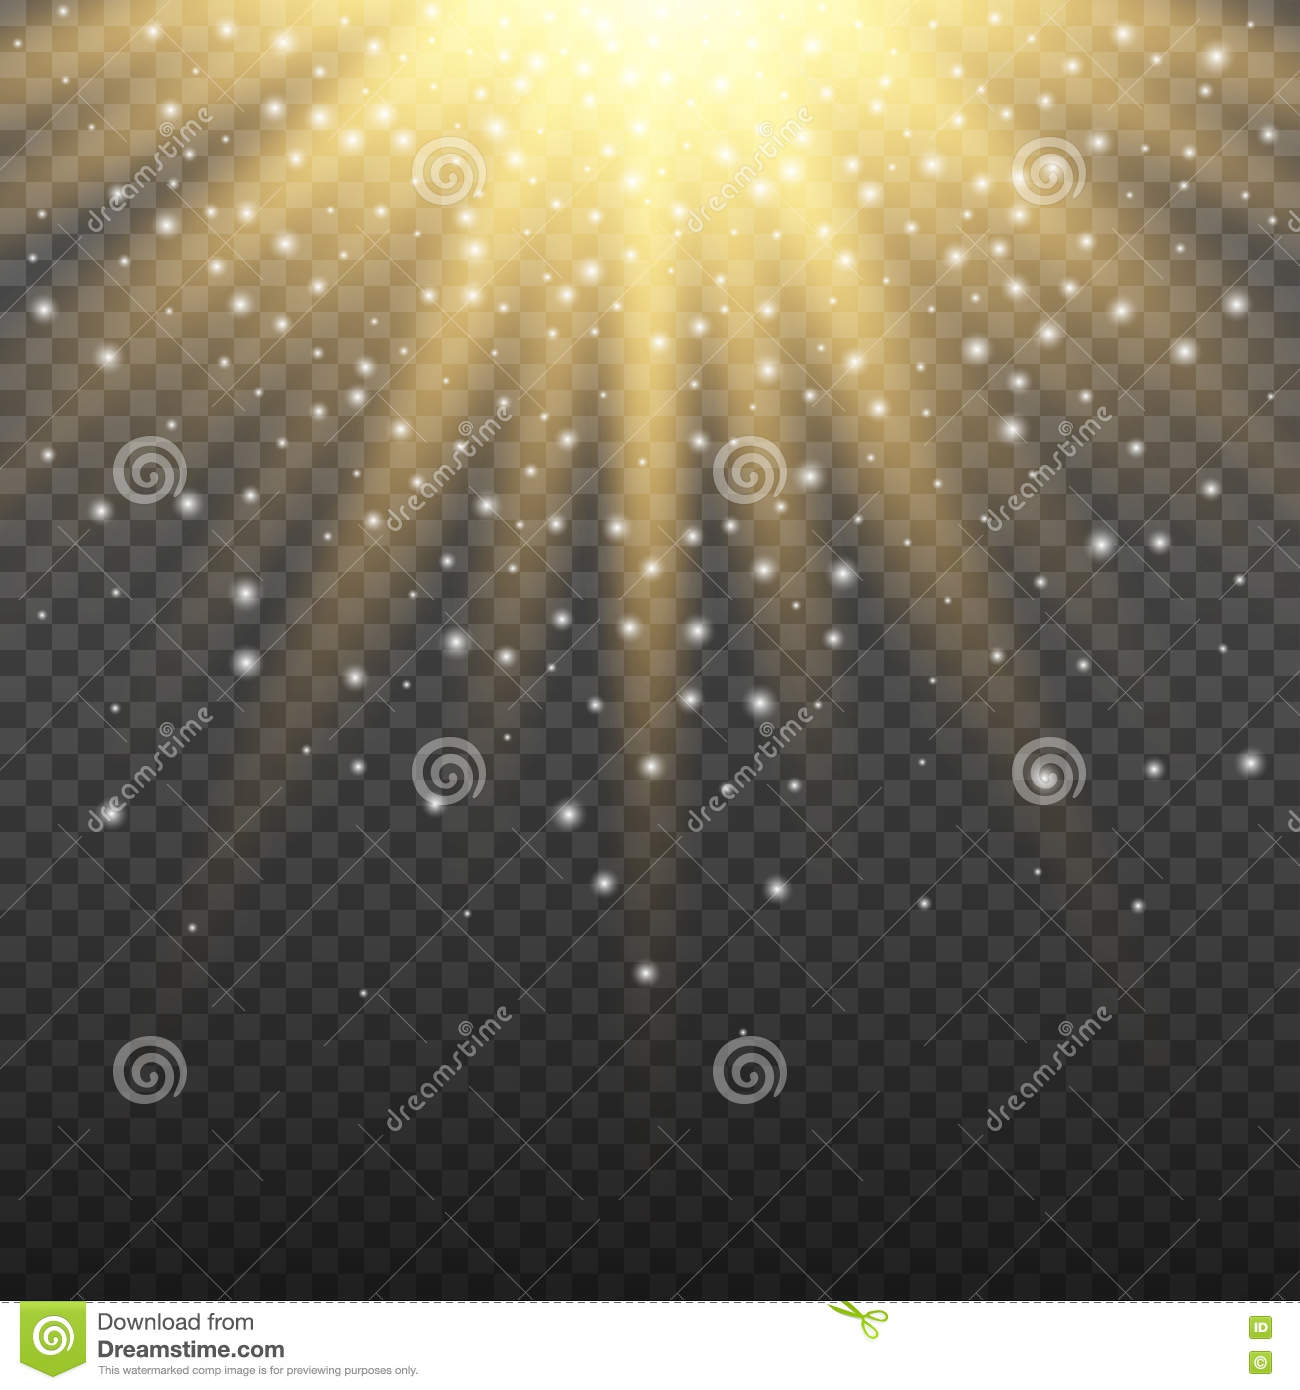 Gold glitter bright vector transparent background golden sparkles - Gold Glowing Light Burst Explosion On Transparent Background Bright Flare Effect Decoration With Ray Sparkles